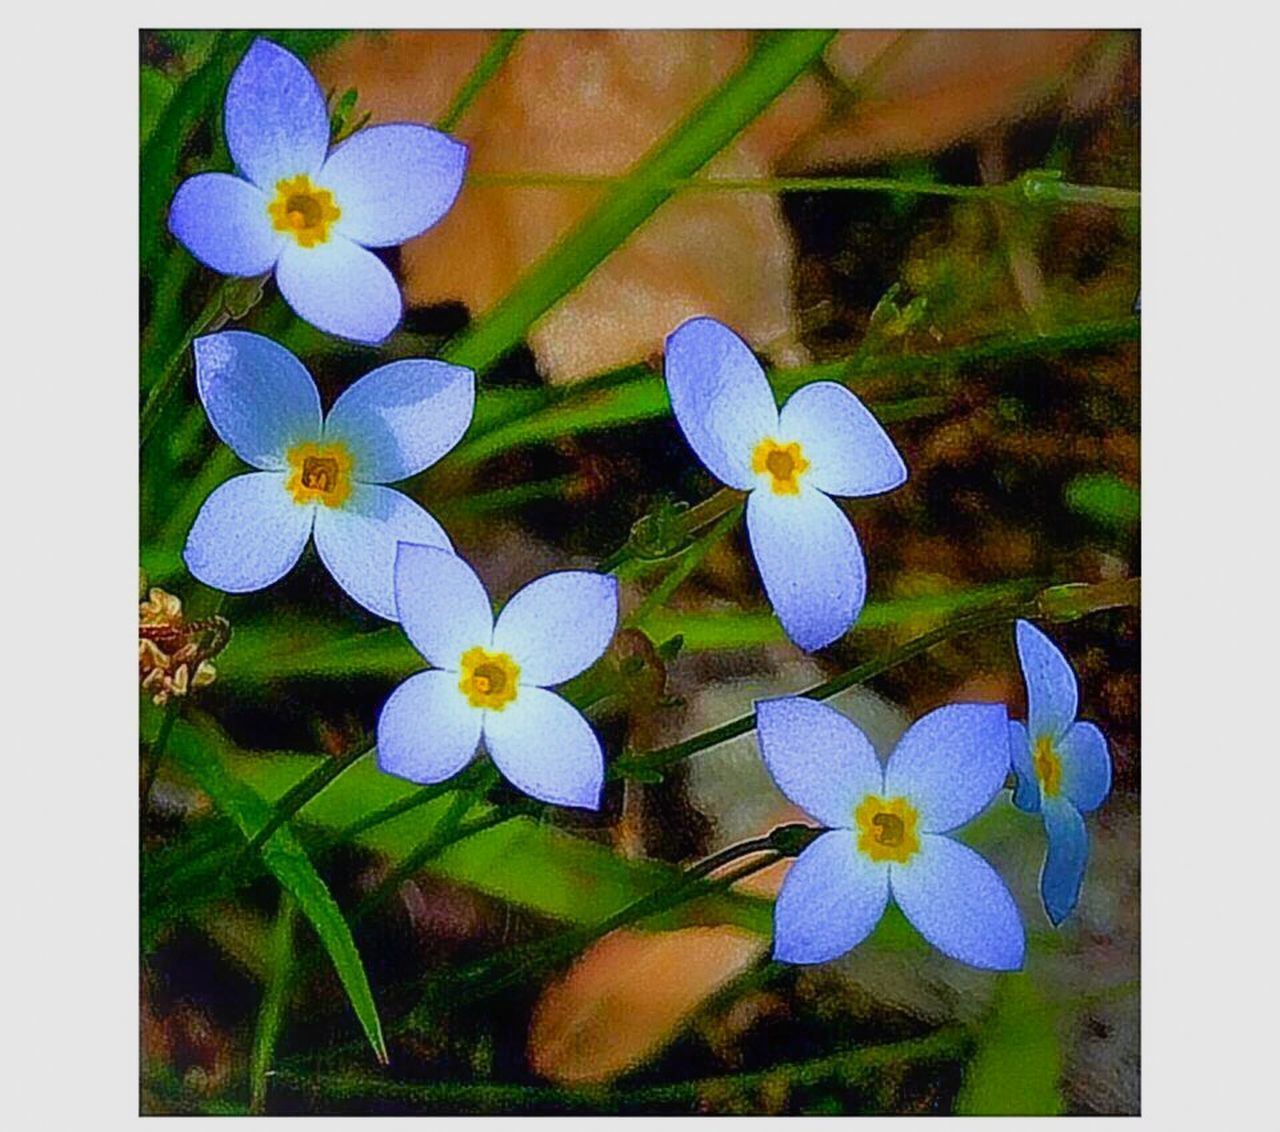 Bluets (Houstonia caerulea) Relaxing Enjoying Life Taking Photos Still Life IPhoneography Nature Nature Photography Wildflowers